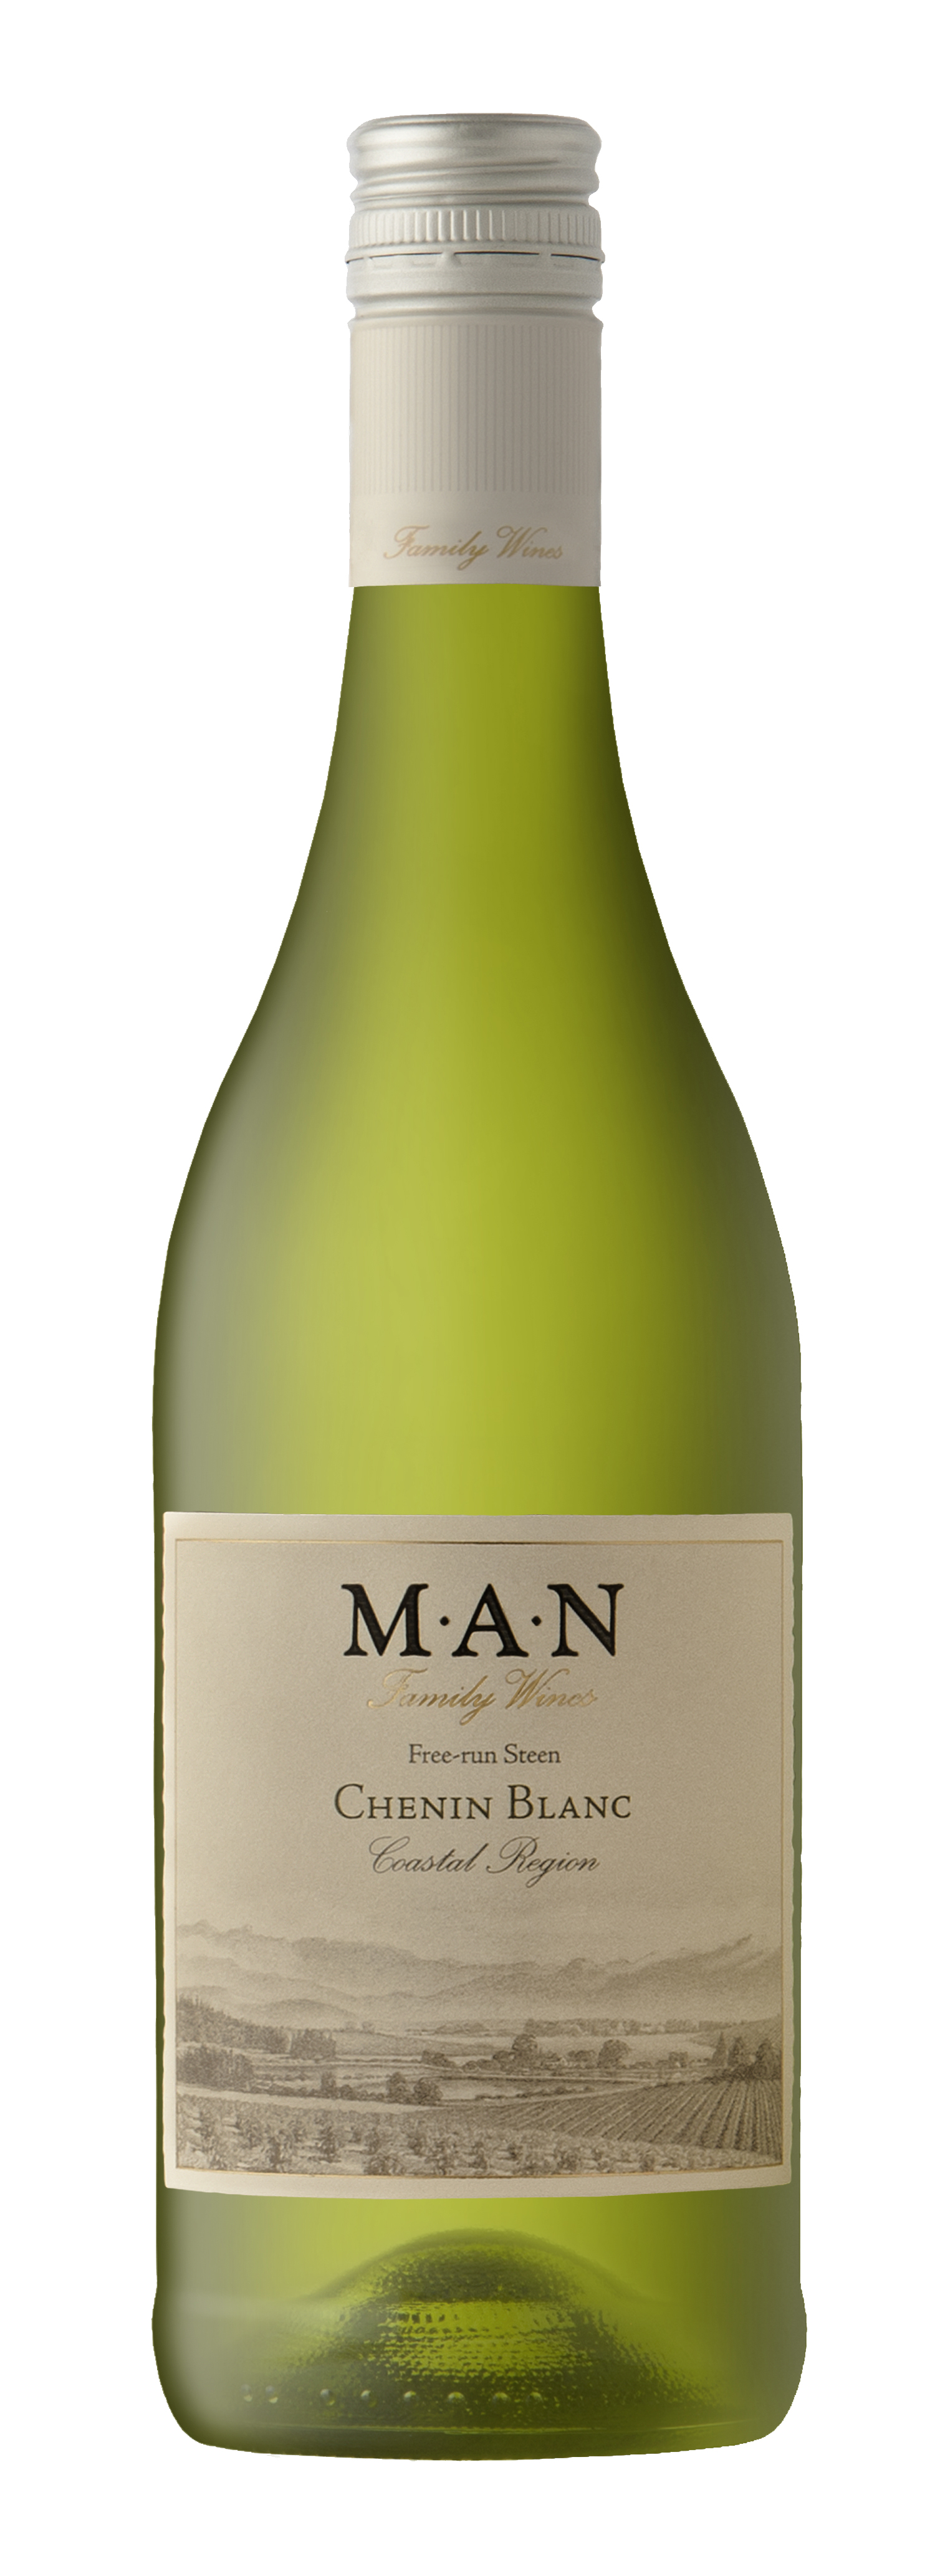 MAN Family Wines Chenin Blanc Bottle.jpg